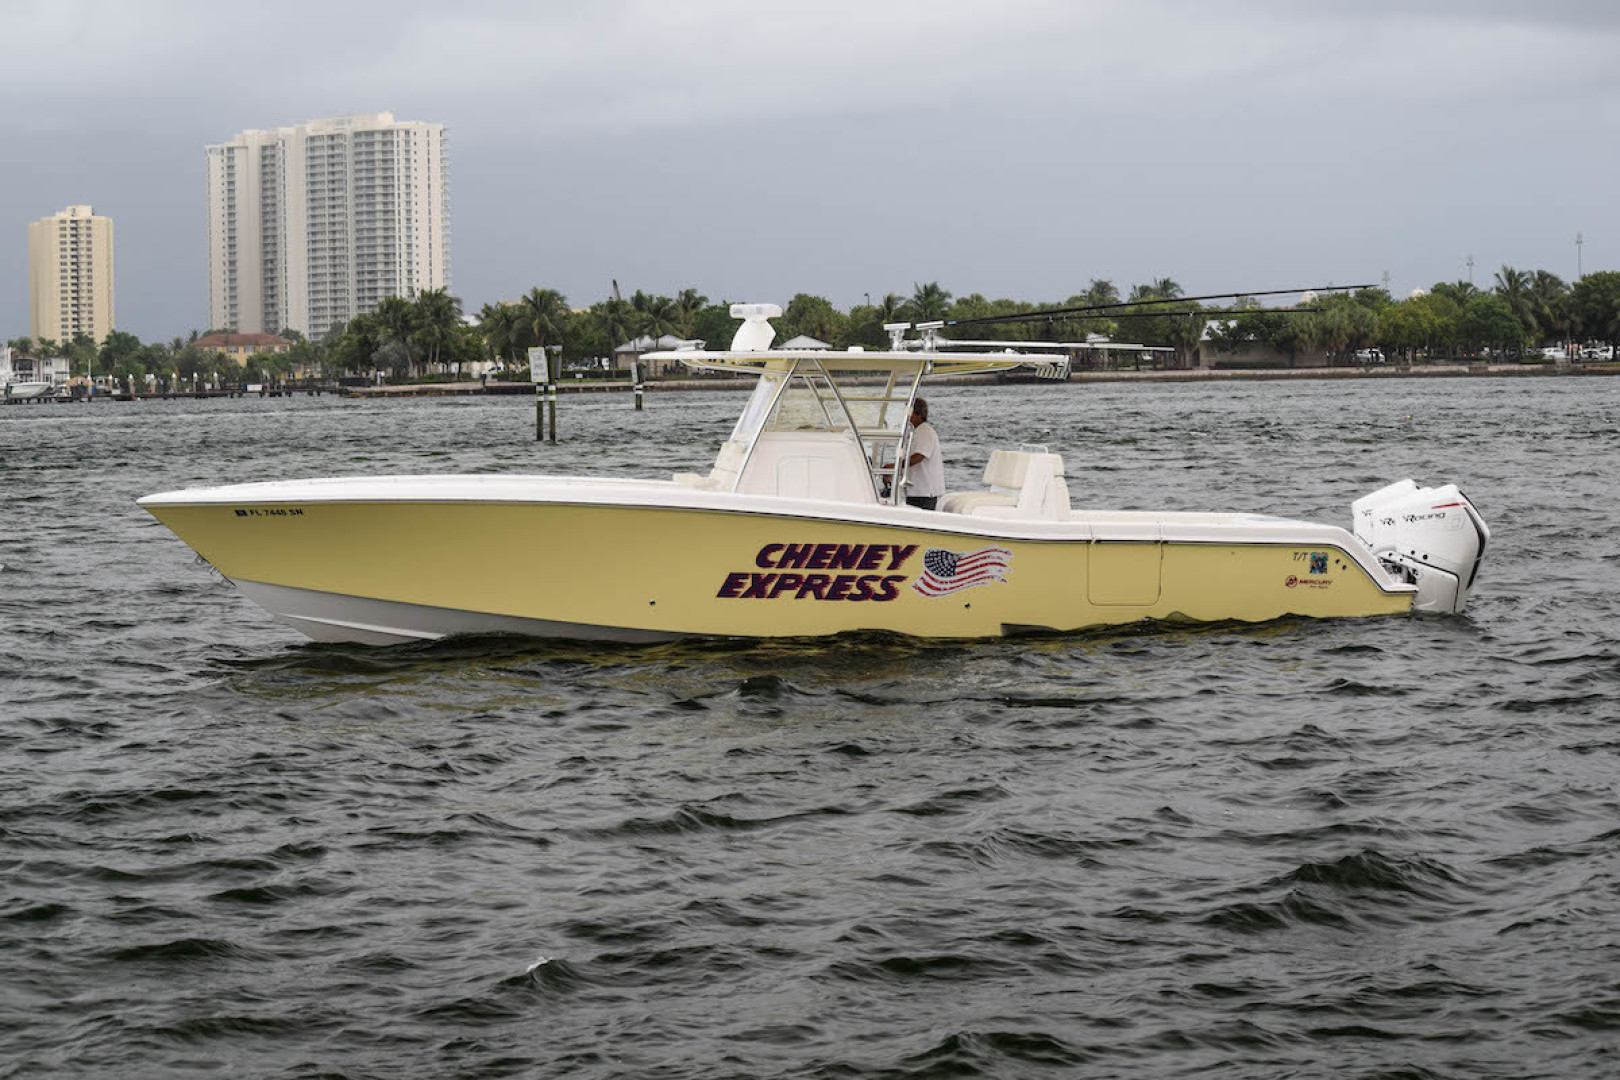 Invincible-39 Open Fisherman 2020-39 Invincible Riviera Beach-Florida-United States-1515199 | Thumbnail